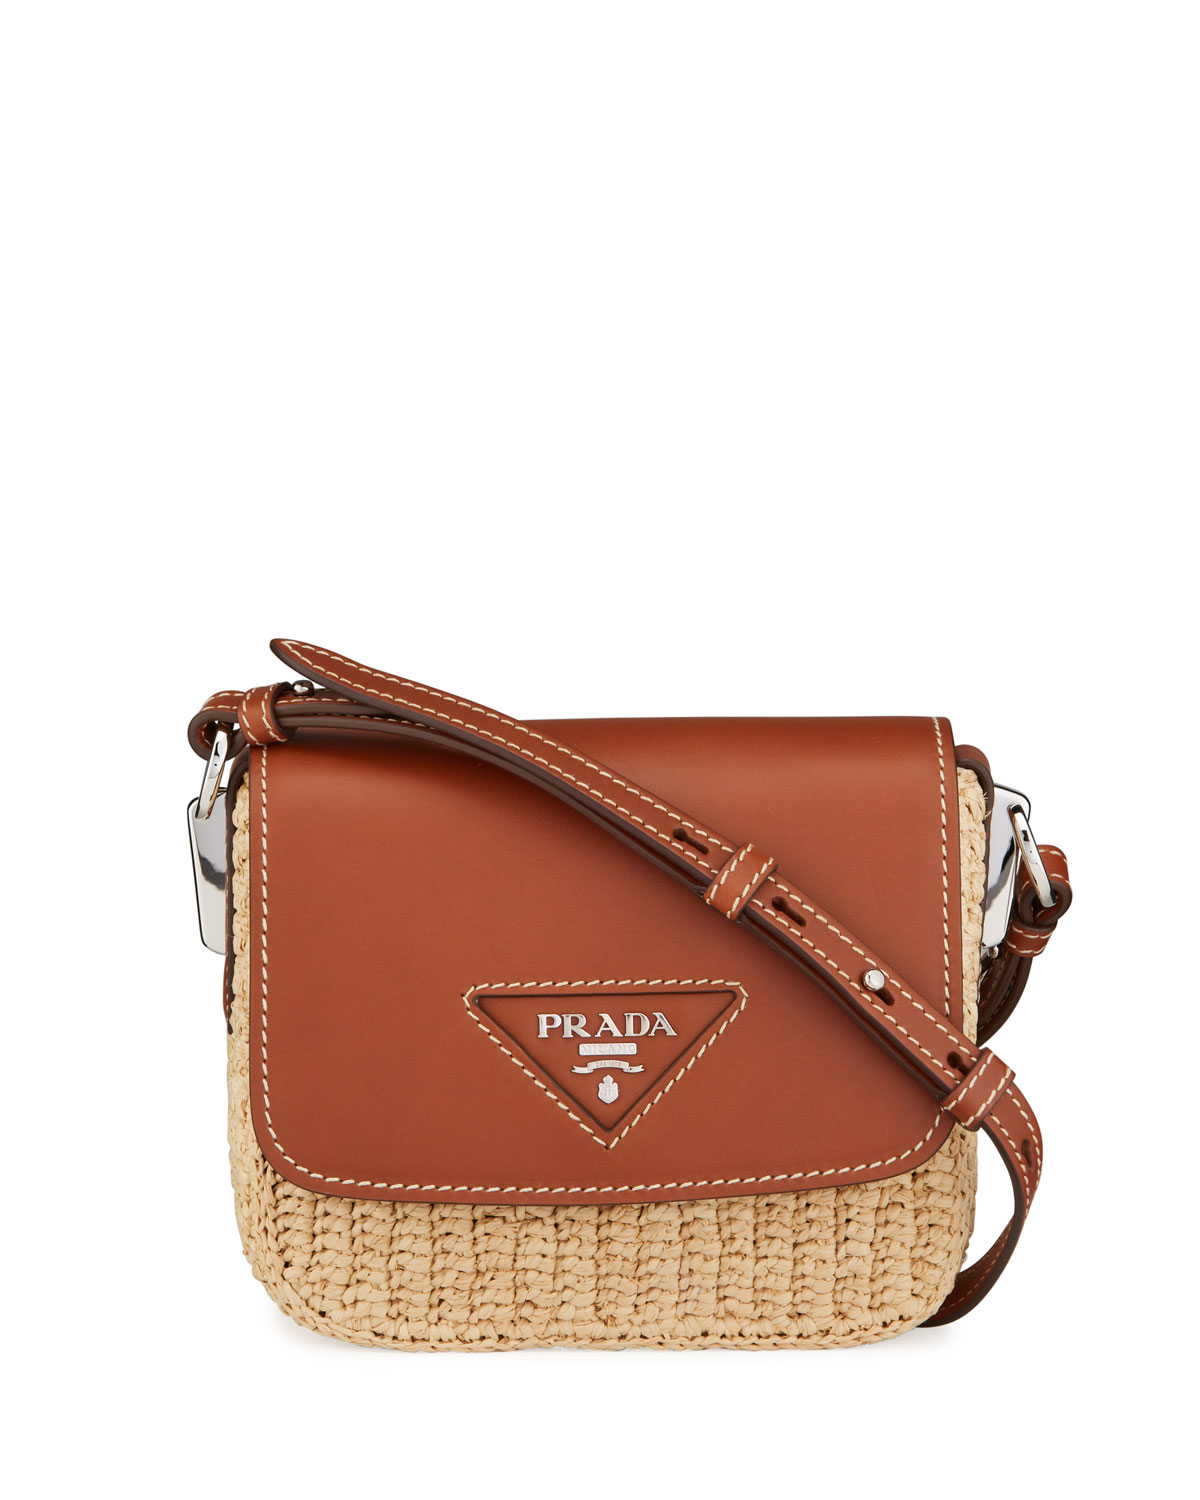 Prada Raffia Emblem Leather Crossbody Bag